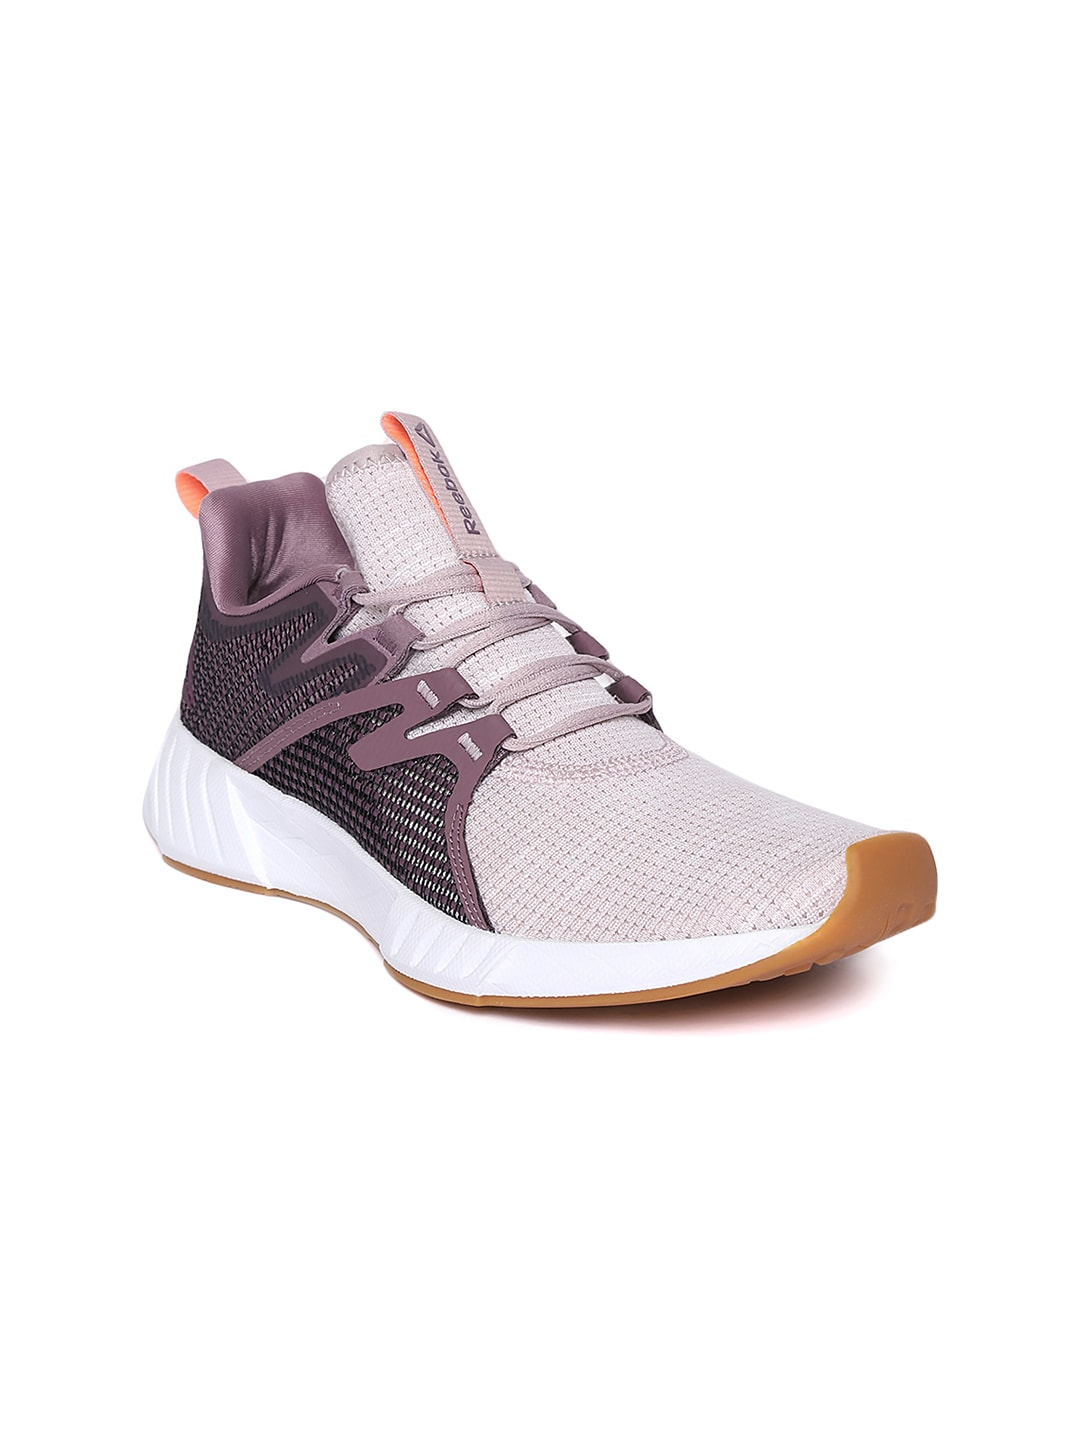 brand new 402aa af08e Reebok Running Shoes  Buy Reebok Running Shoes Online in India at Best  Price